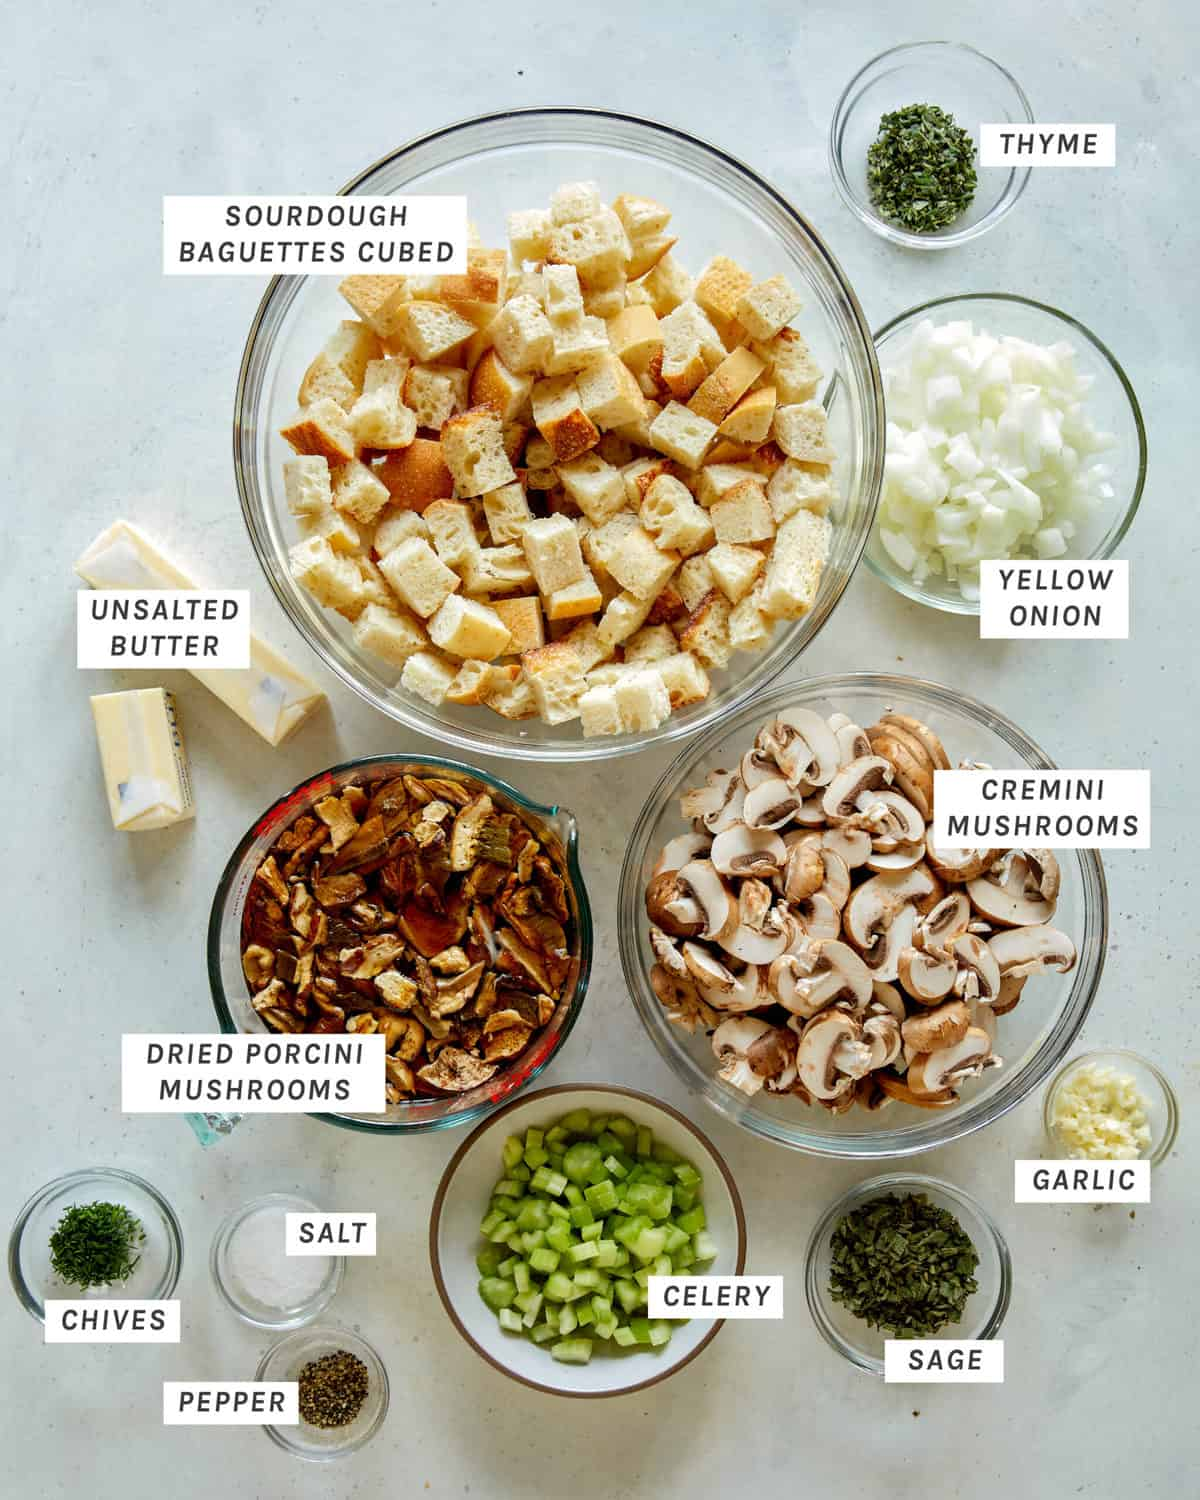 Ingredients for mushroom and sage stuffing on a kitchen counter.